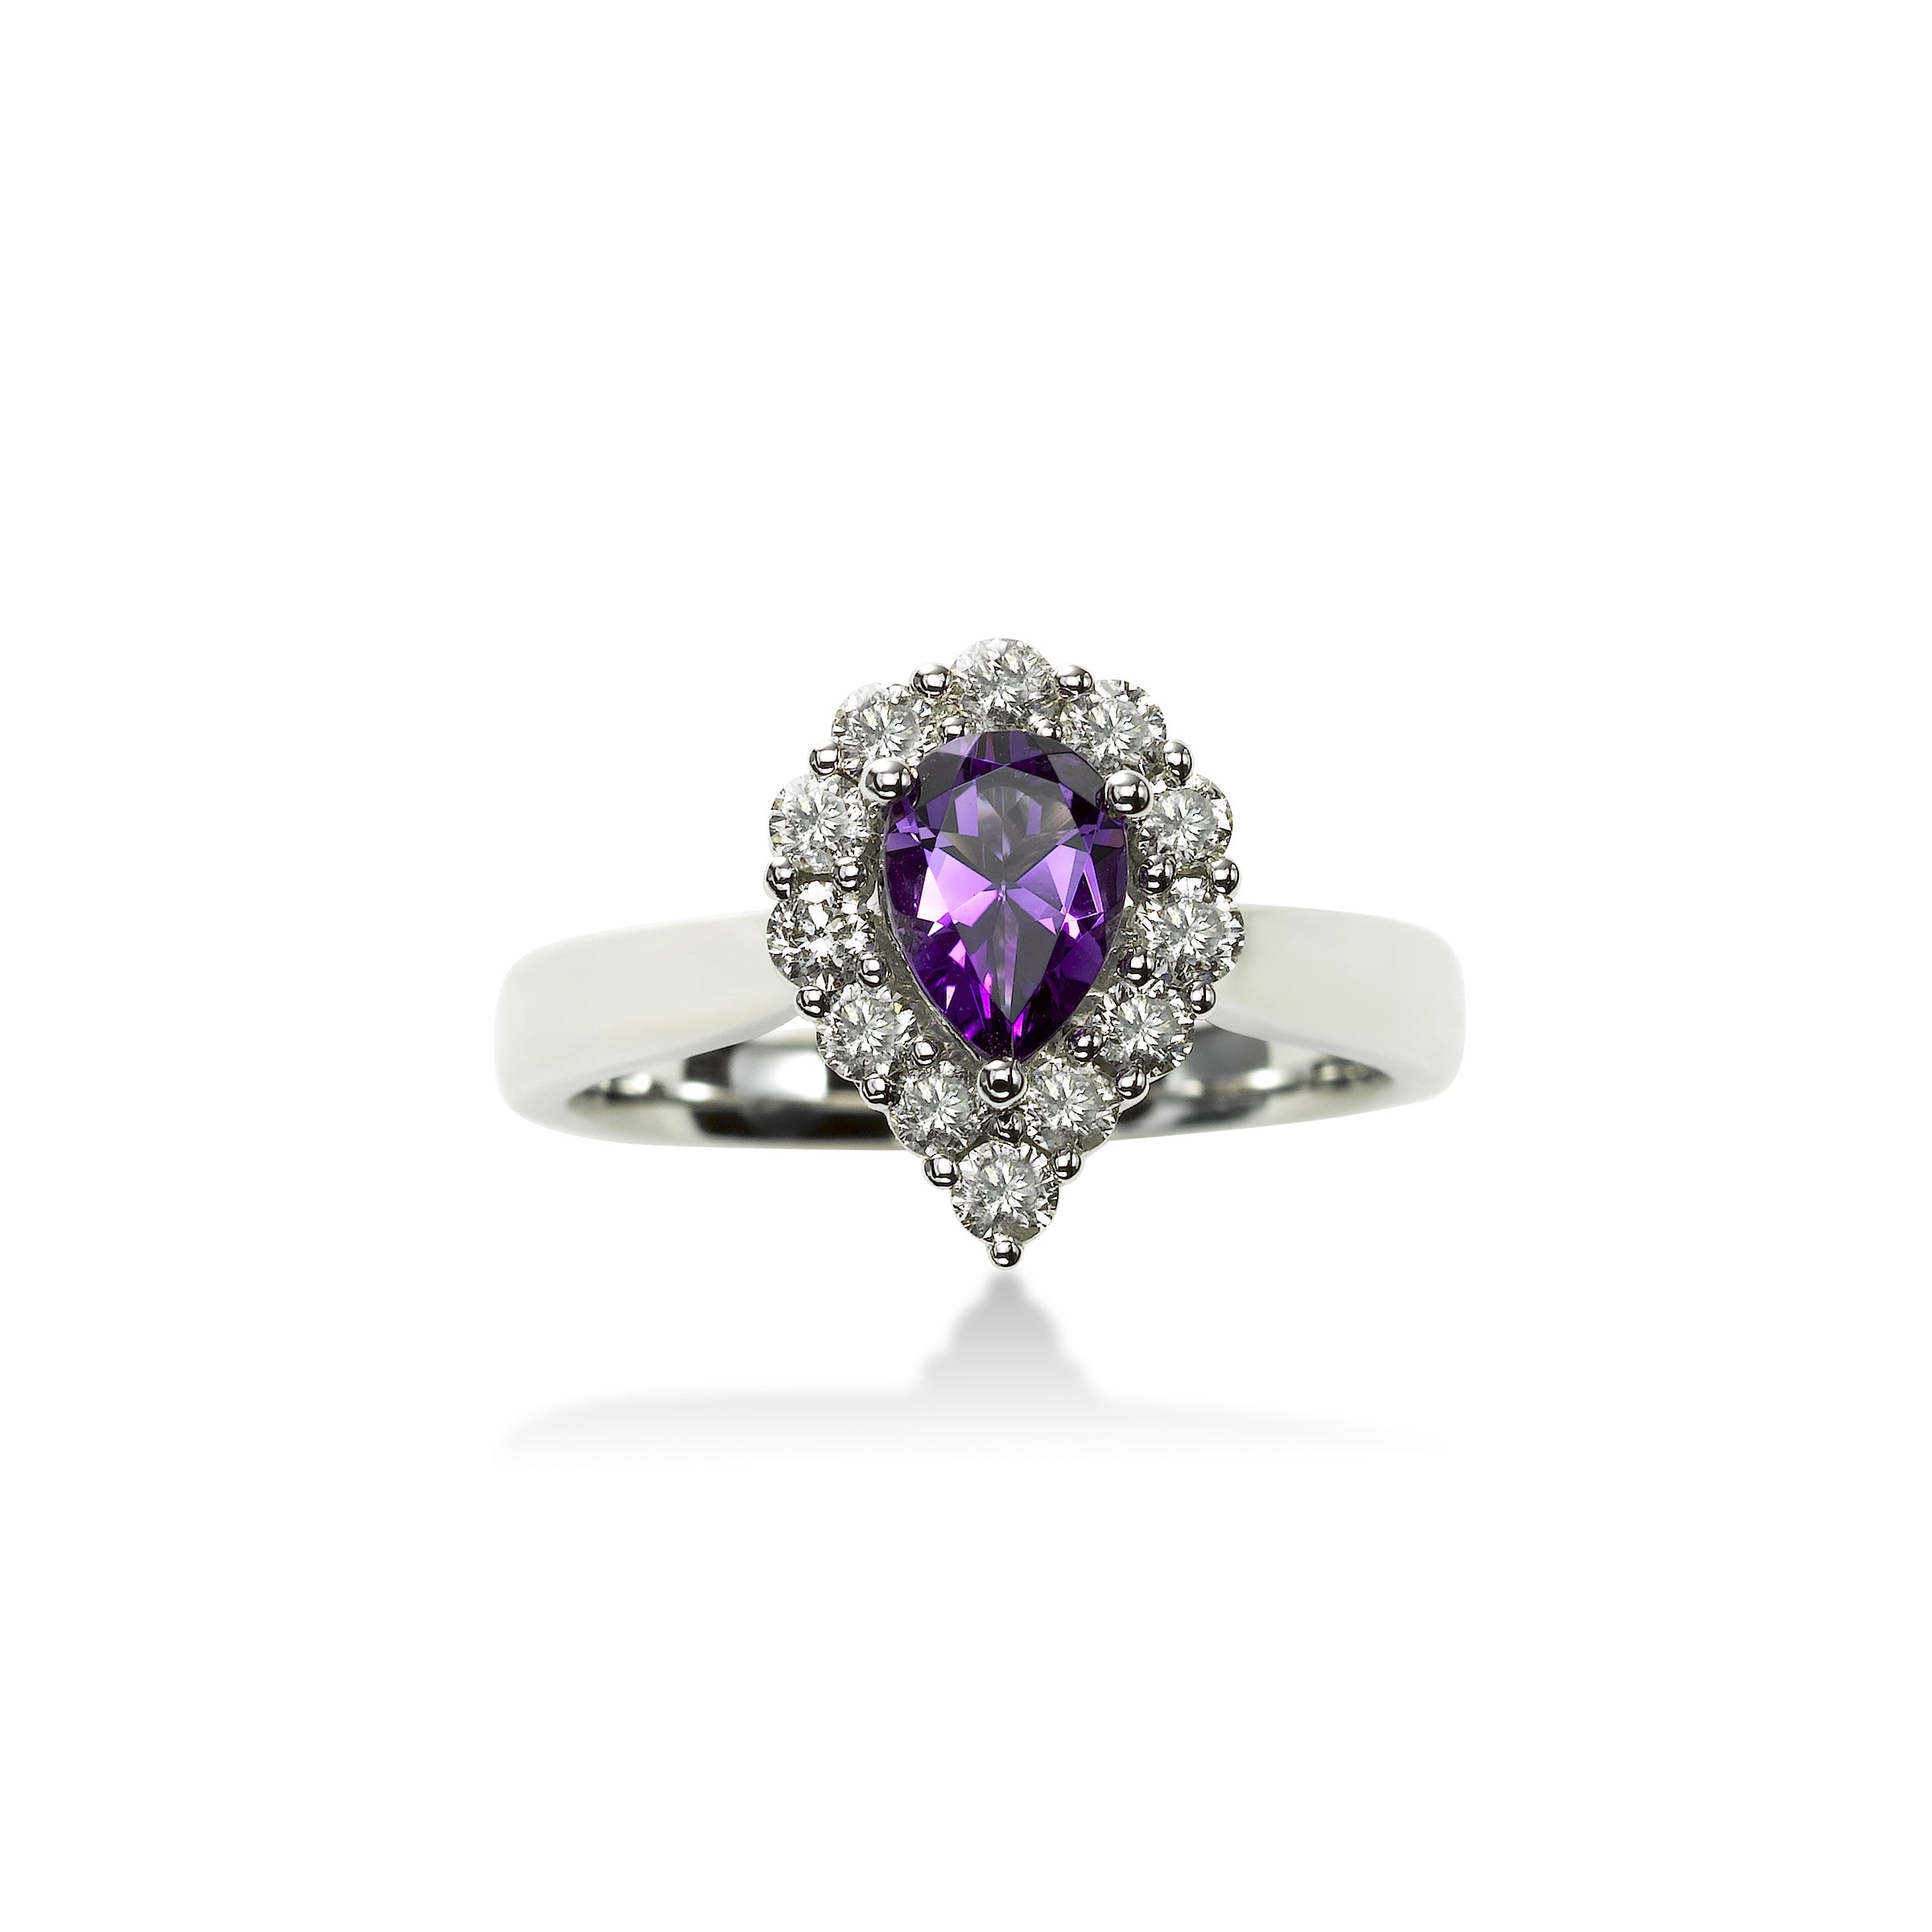 Pear Shape Amethyst and Diamond Ring, 14K White Gold